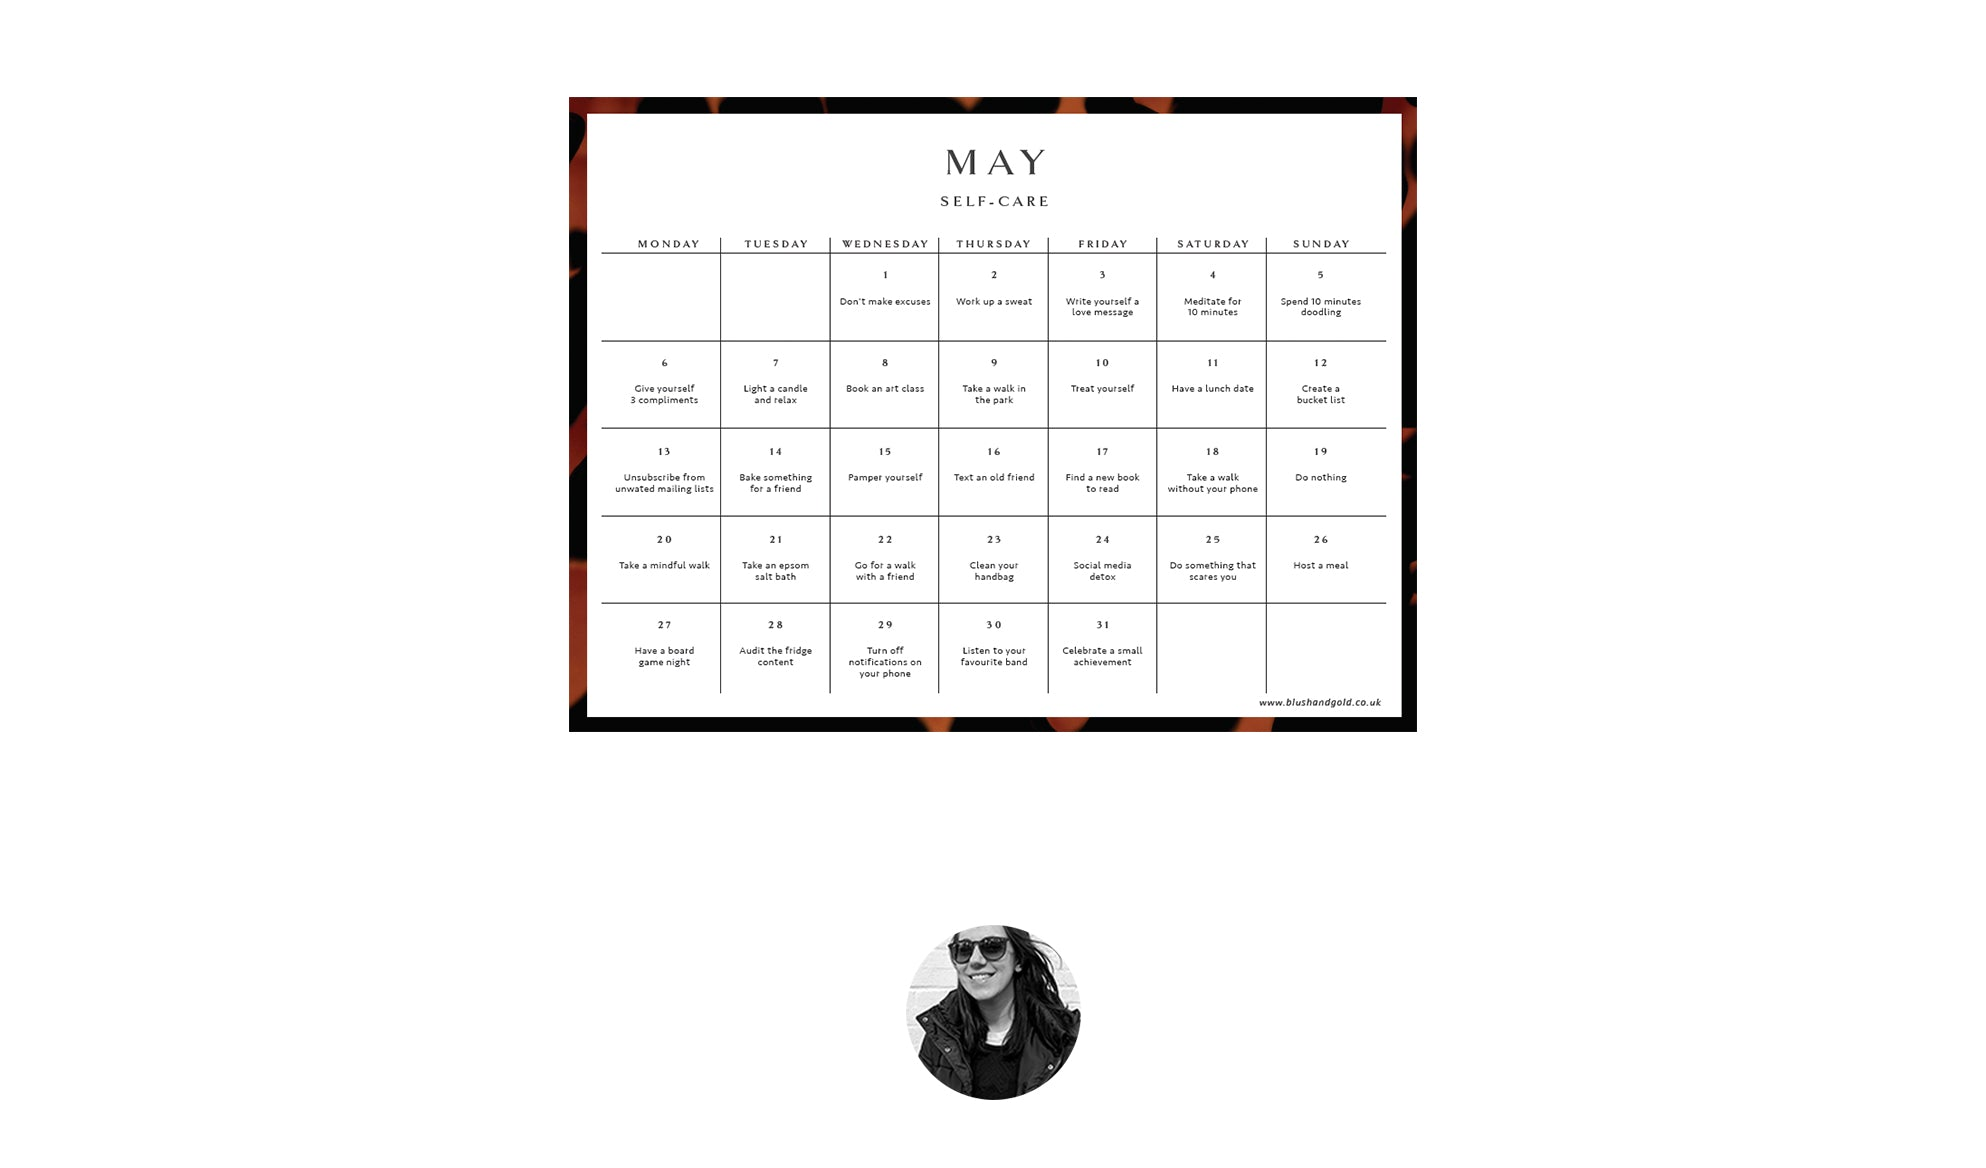 may self care calendar